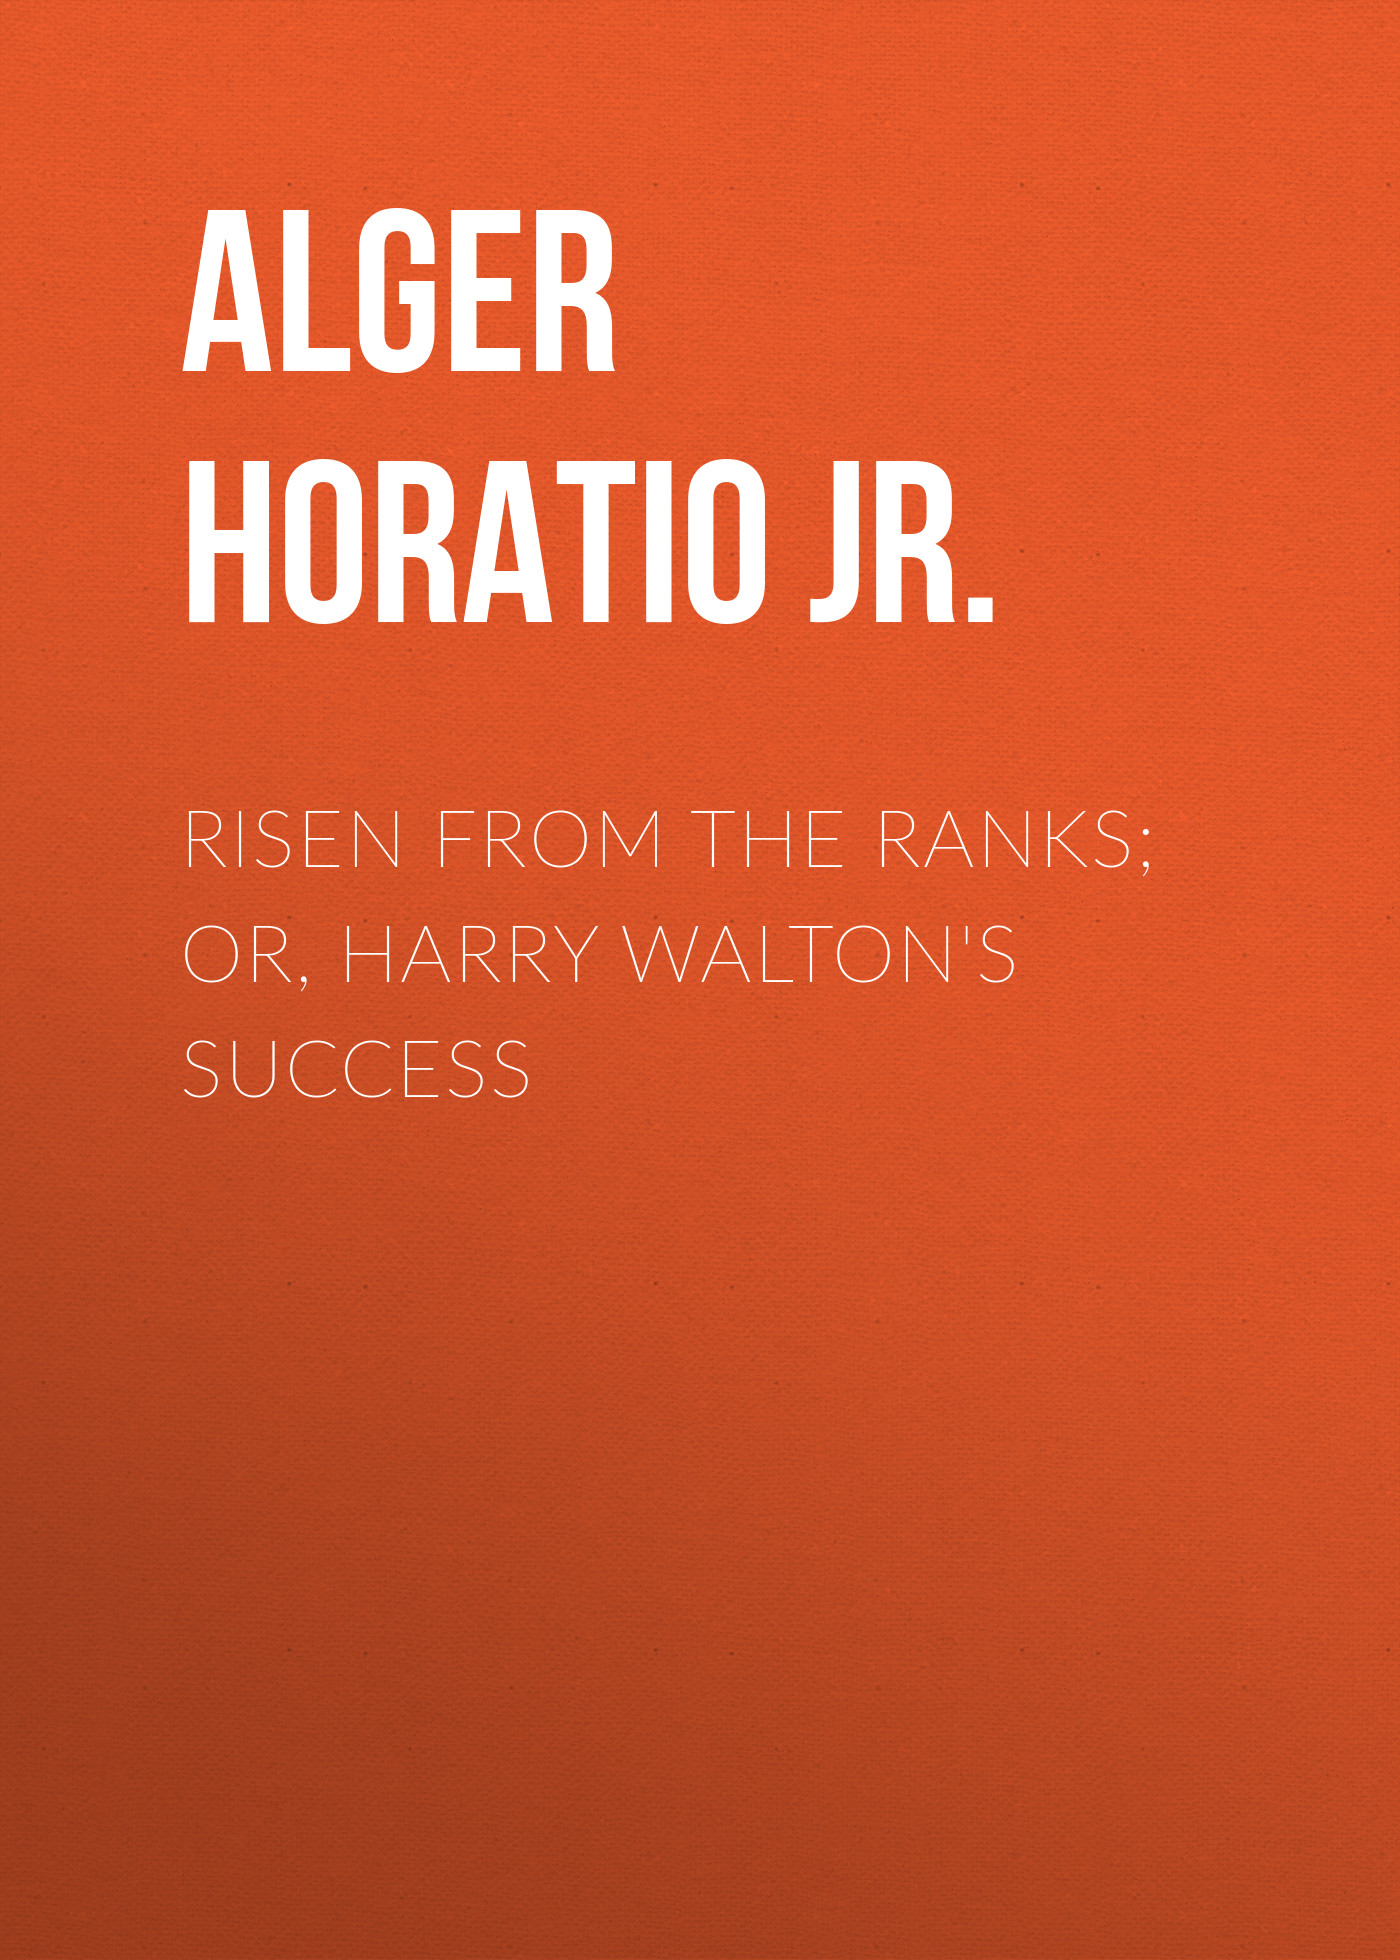 Alger Horatio Jr. Risen from the Ranks; Or, Harry Walton's Success alger horatio jr risen from the ranks or harry walton s success